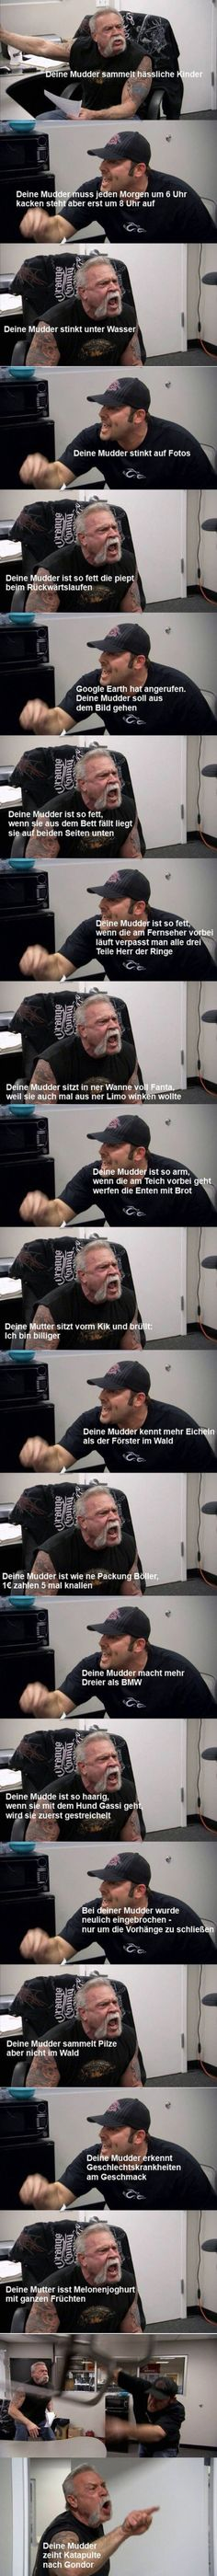 Deine Mudda & Deine Mudda & & Lustiges & Was is hier eigentlich los?de The post Deine Mudda & & Witzig appeared first on Funny . Memes Humor, Funny Dog Memes, 9gag Funny, Funny Texts, Good Morning Funny Pictures, Really Funny Pictures, Humor Mexicano, Wallpapers Funny, Funny Images